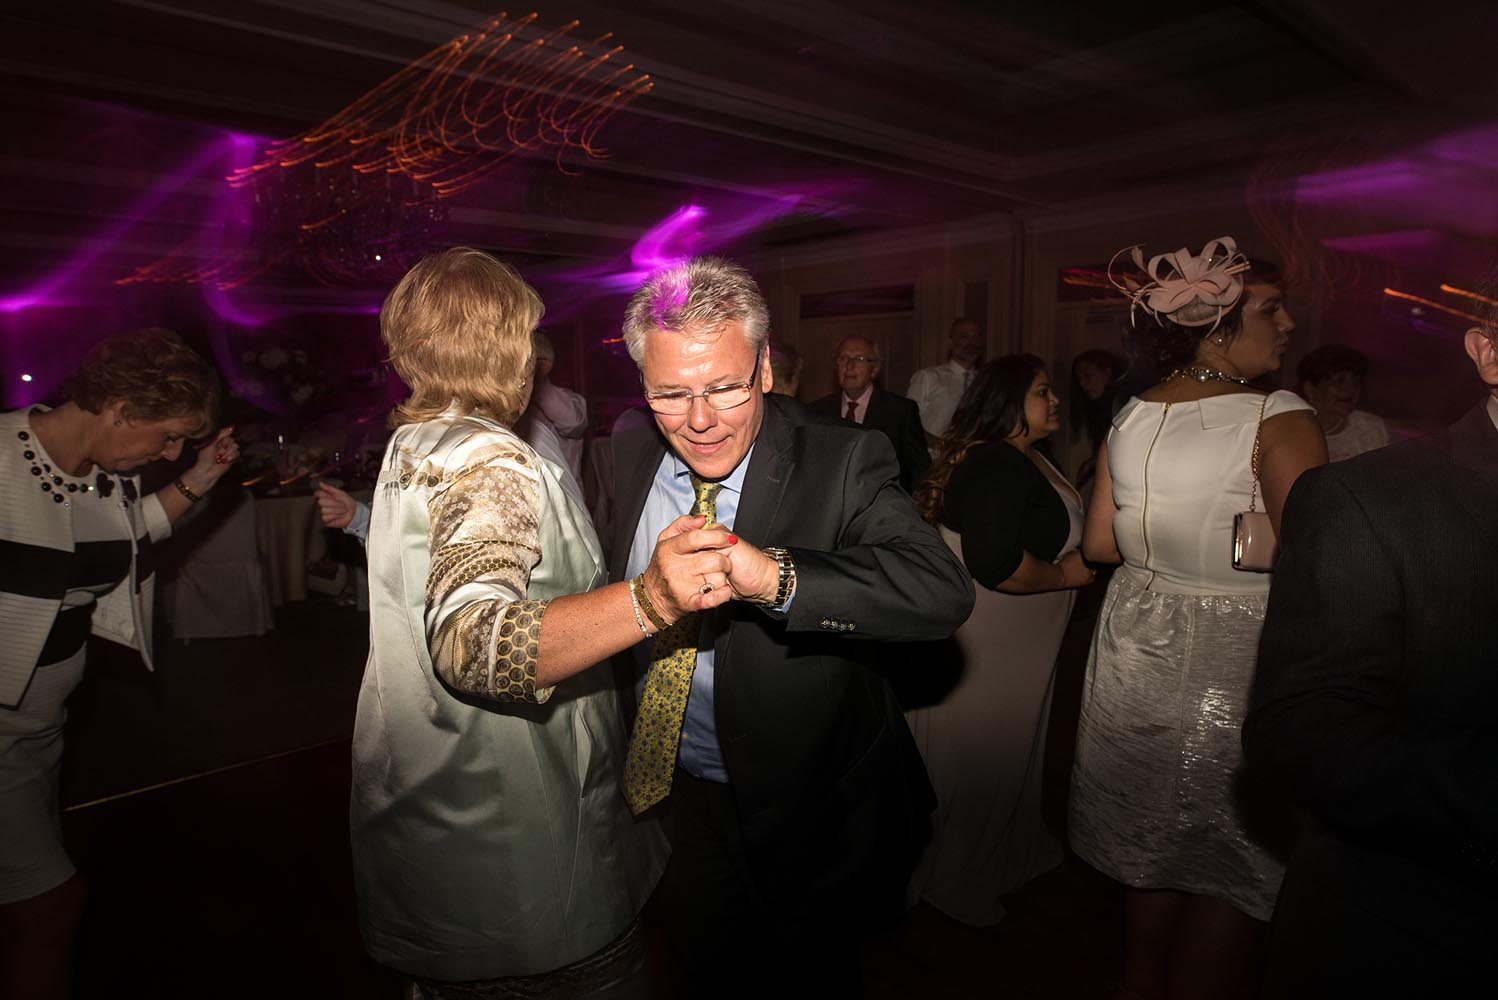 People dancing during a wedding